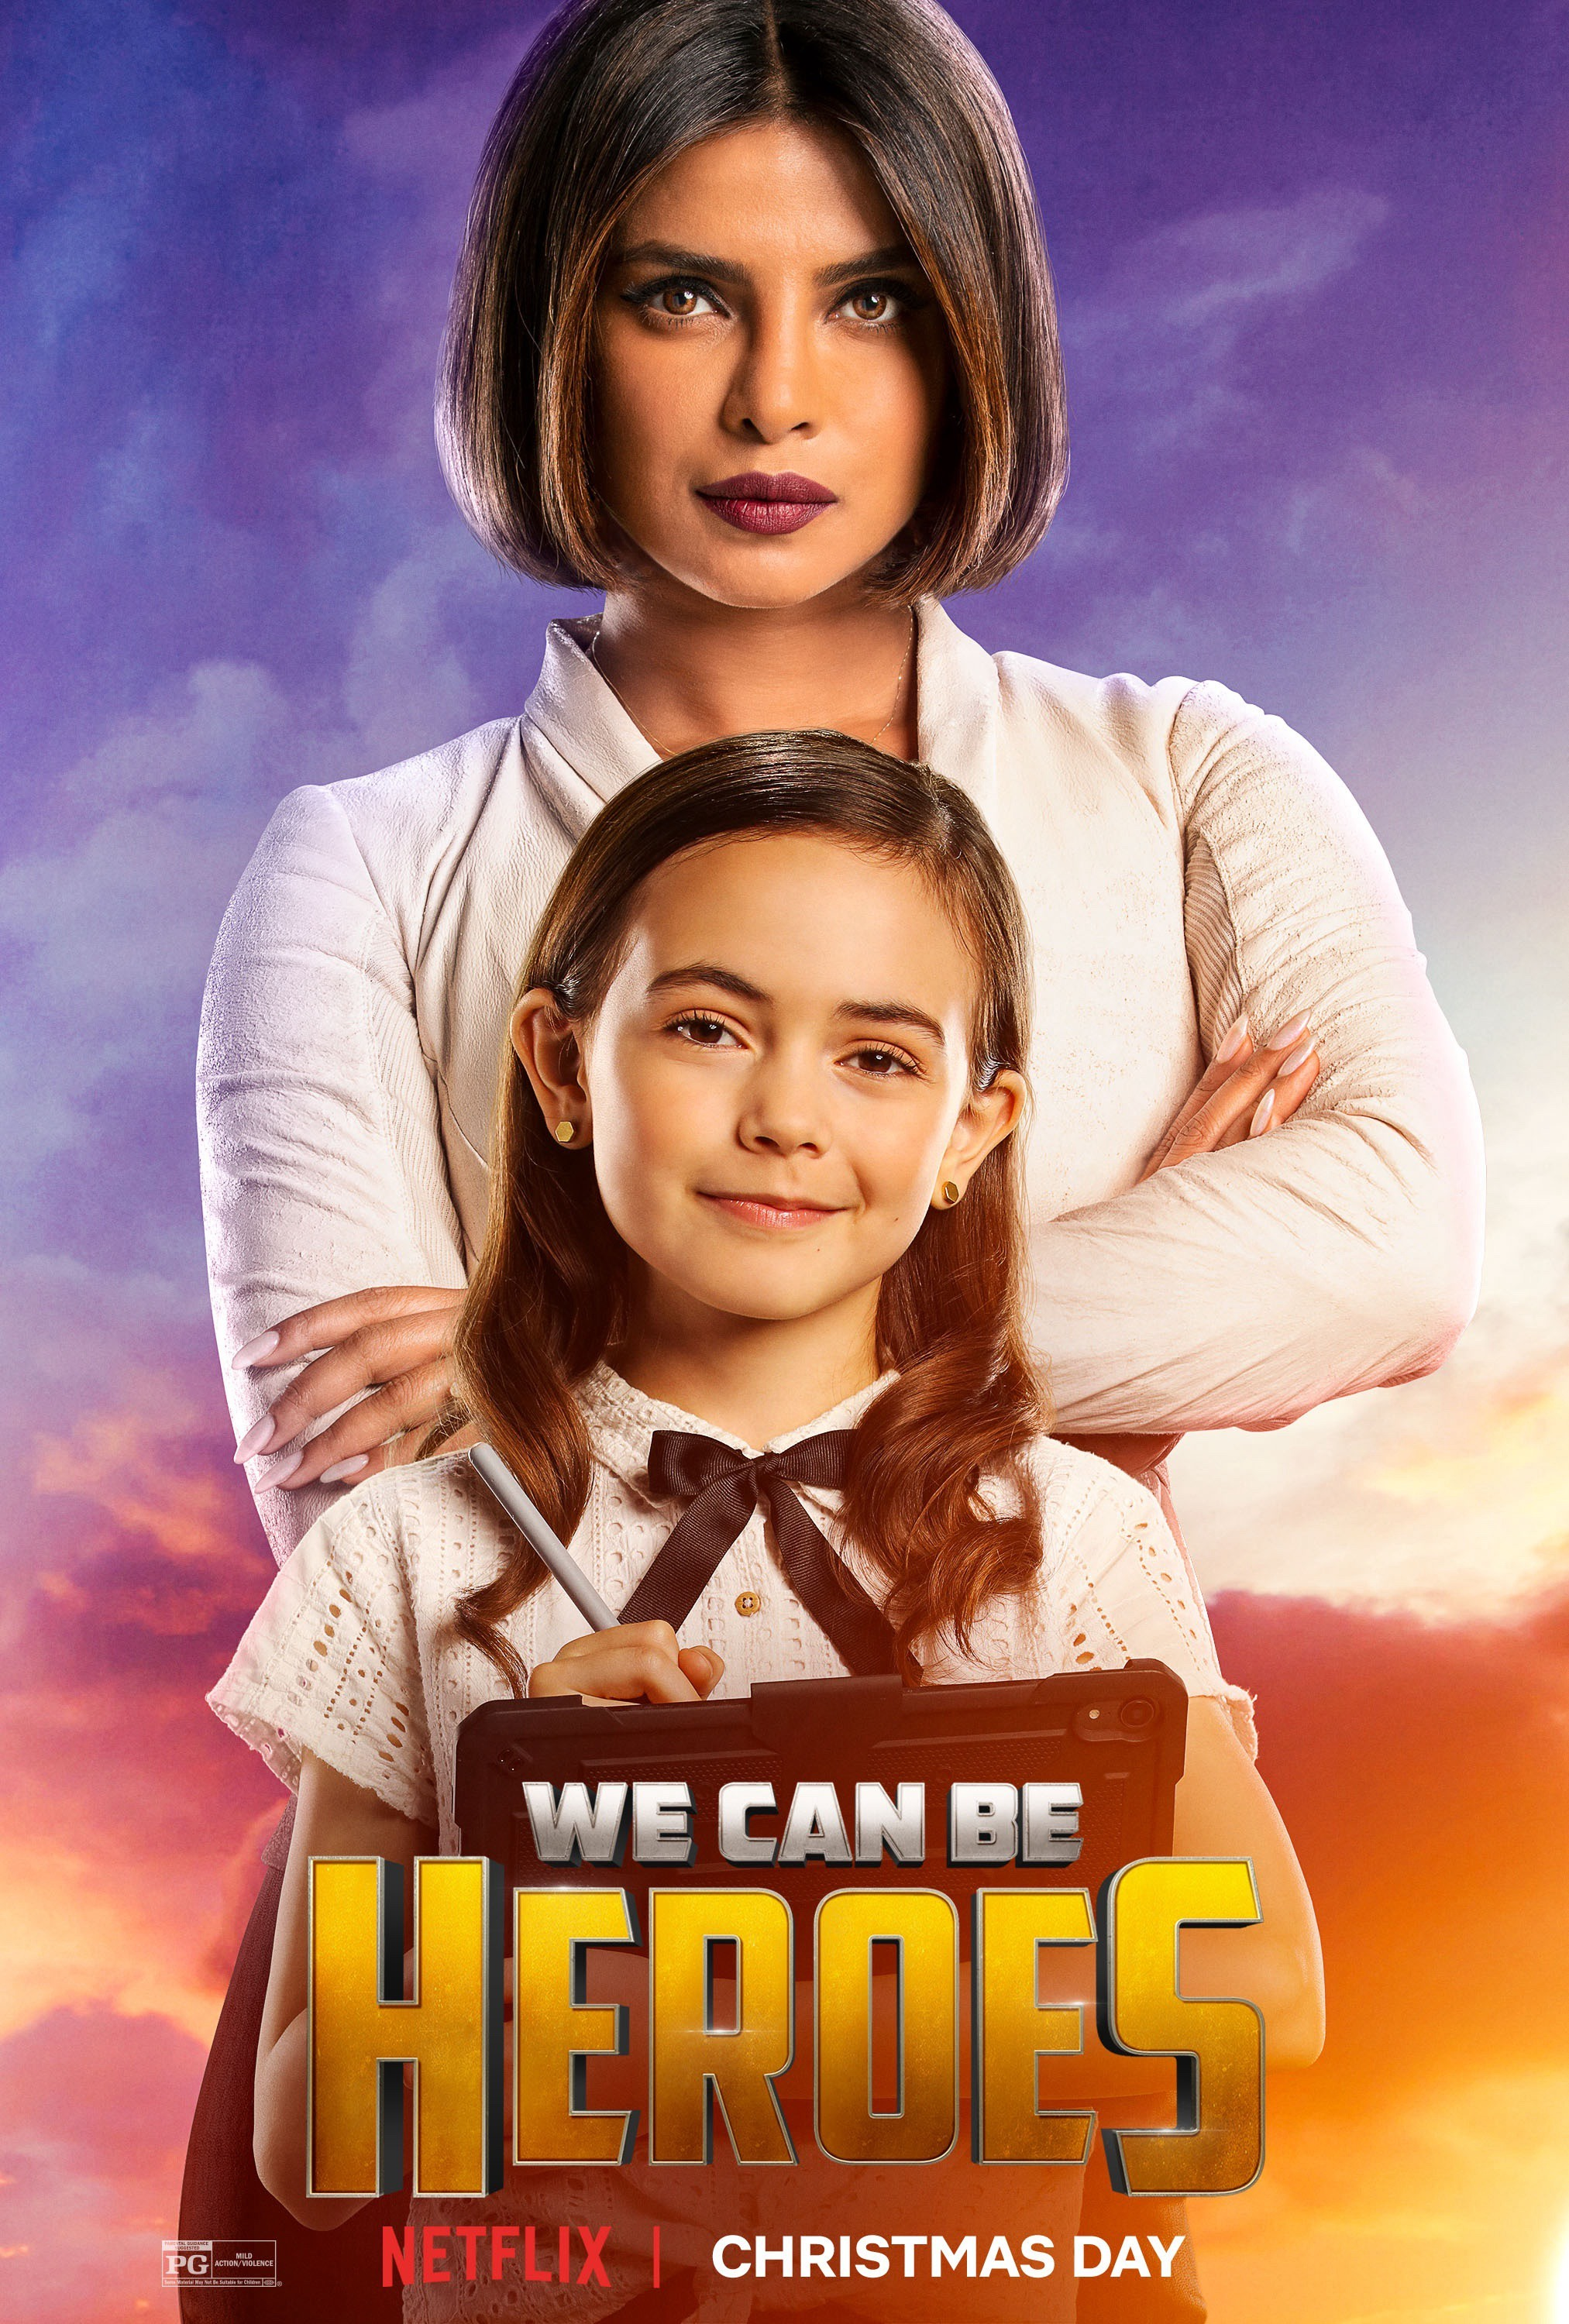 We Can Be Heroes || Character Posters